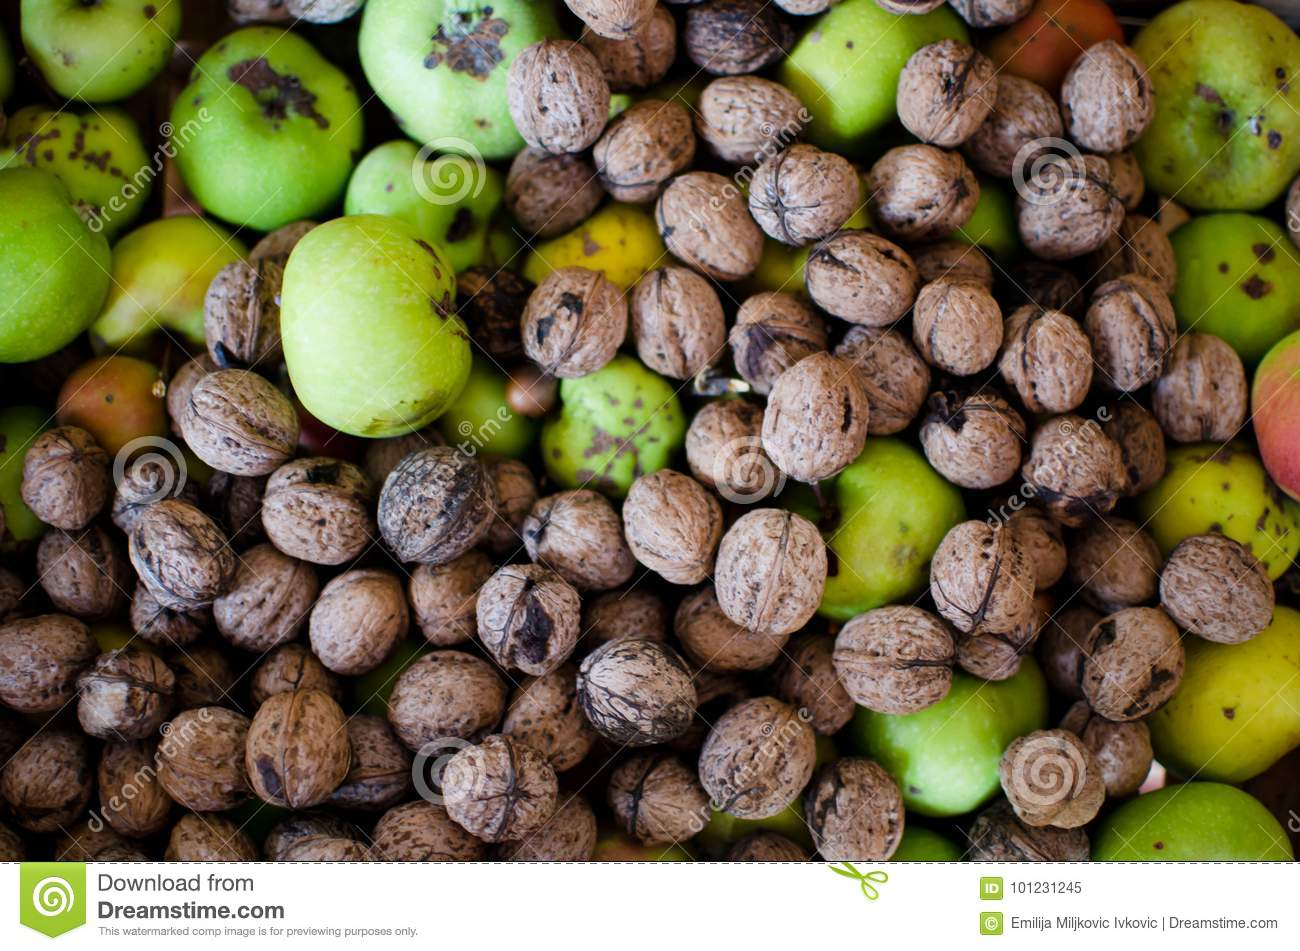 19a3fa3e4a8d Nuts and apples on pile stock image. Image of fruit - 101231245